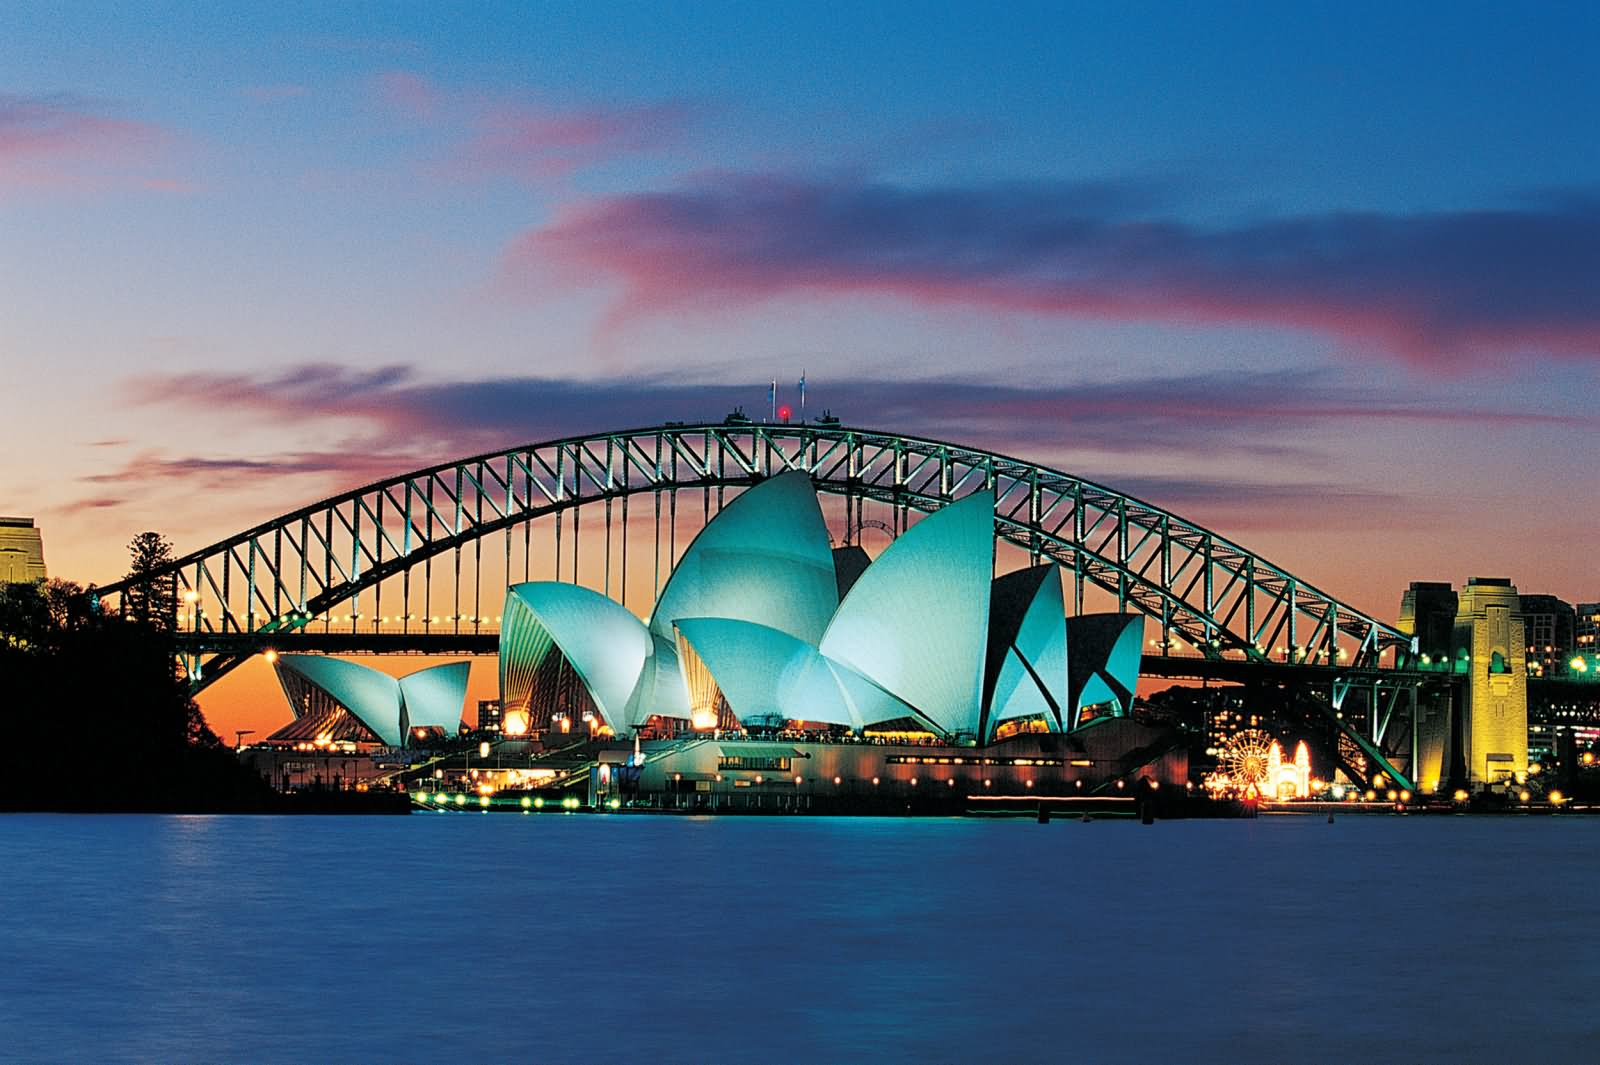 Evening View Of Sydney Opera House And Harbour Bridge - View Pictures Of Sydney Australia Opera House  Pics